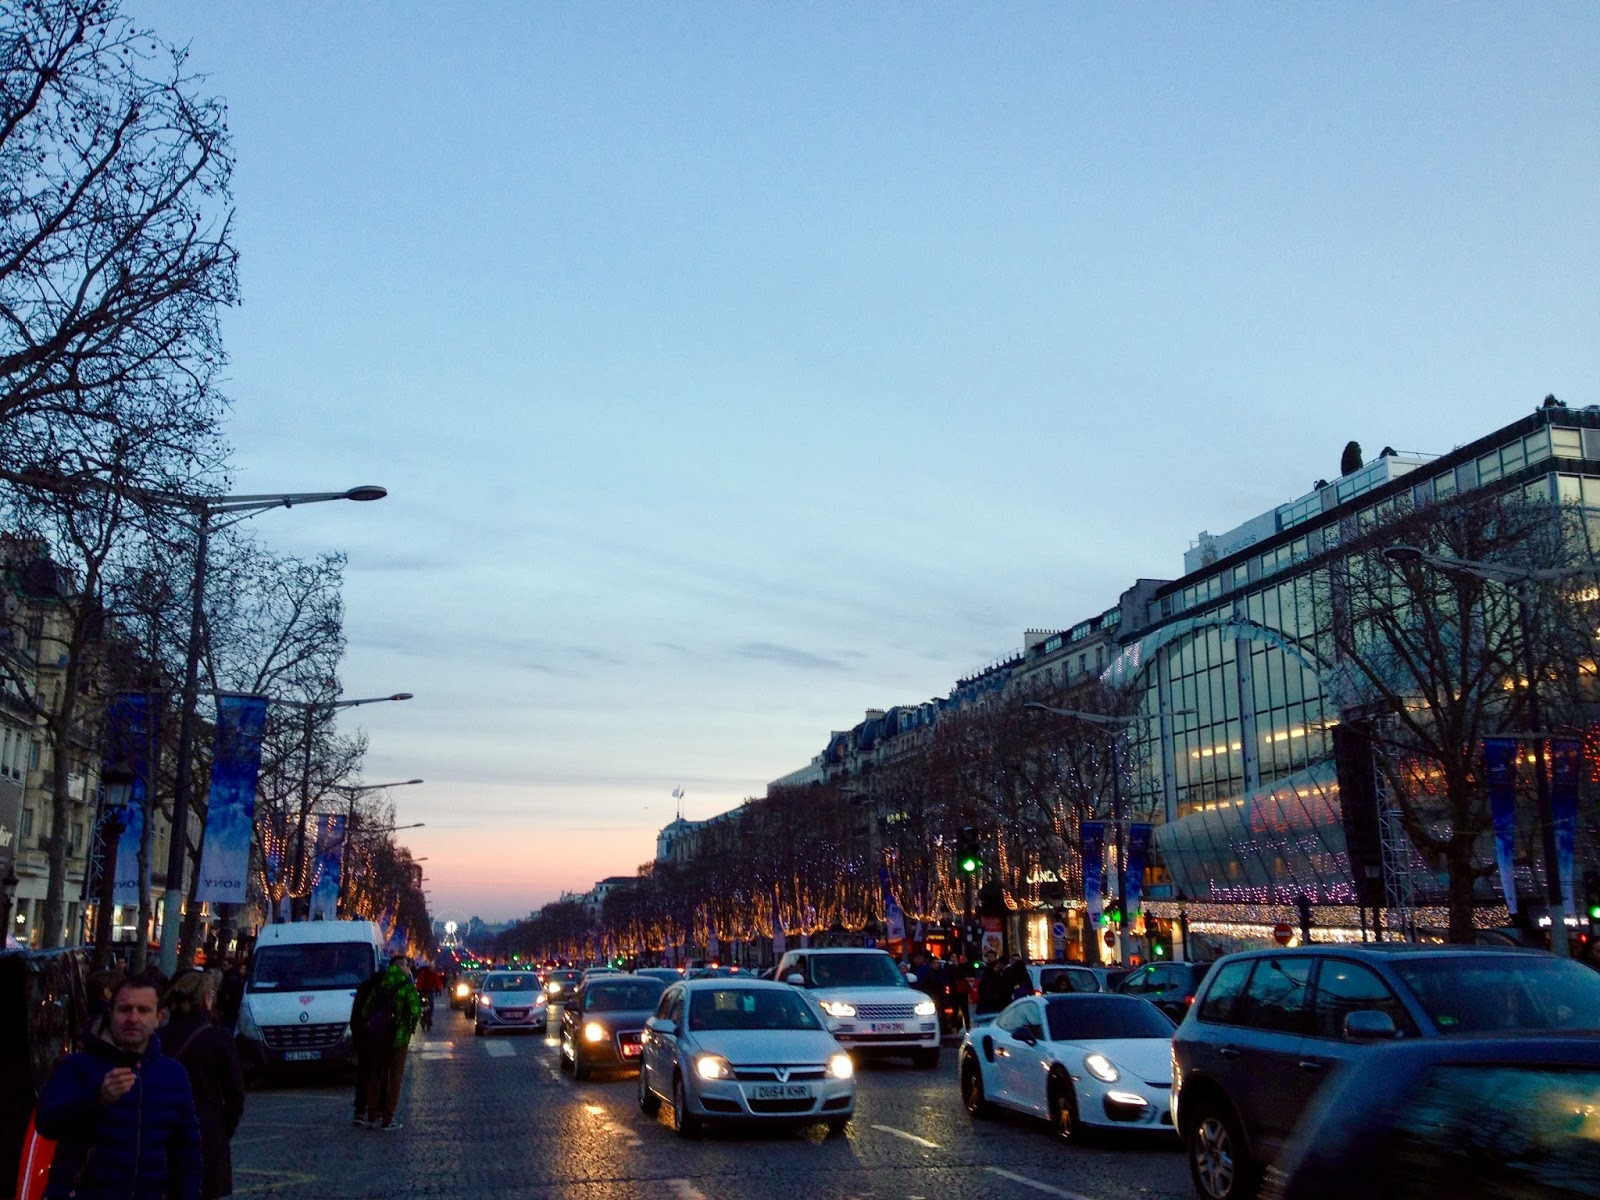 Jalan-Jalan di Paris - Sunset at Champs-Élysées